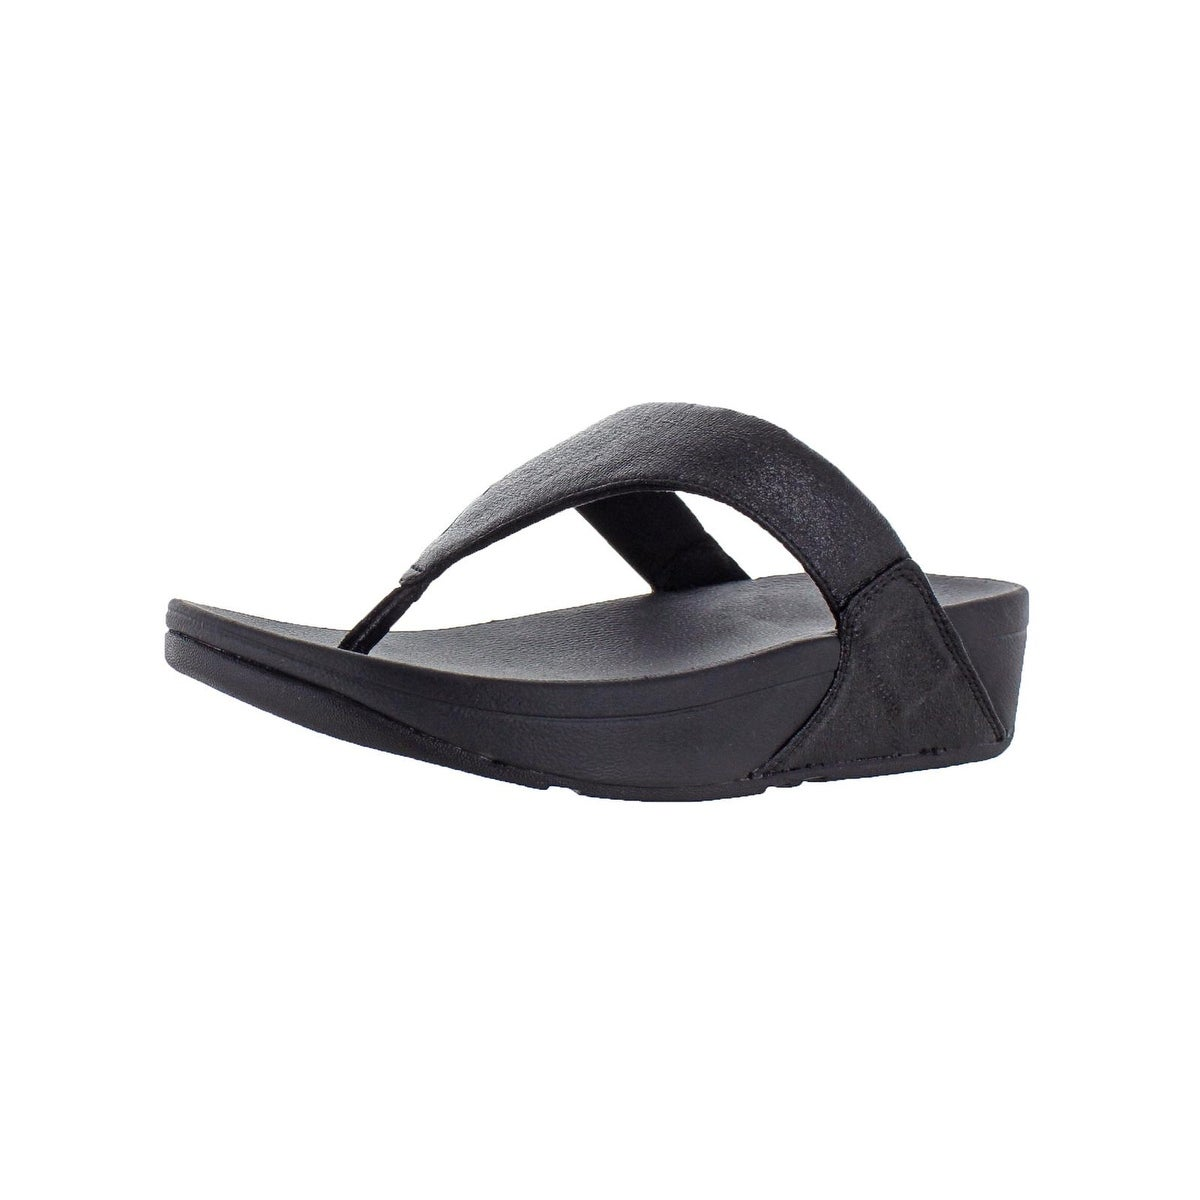 4a94b72e1c19e Buy FitFlop Women s Sandals Online at Overstock